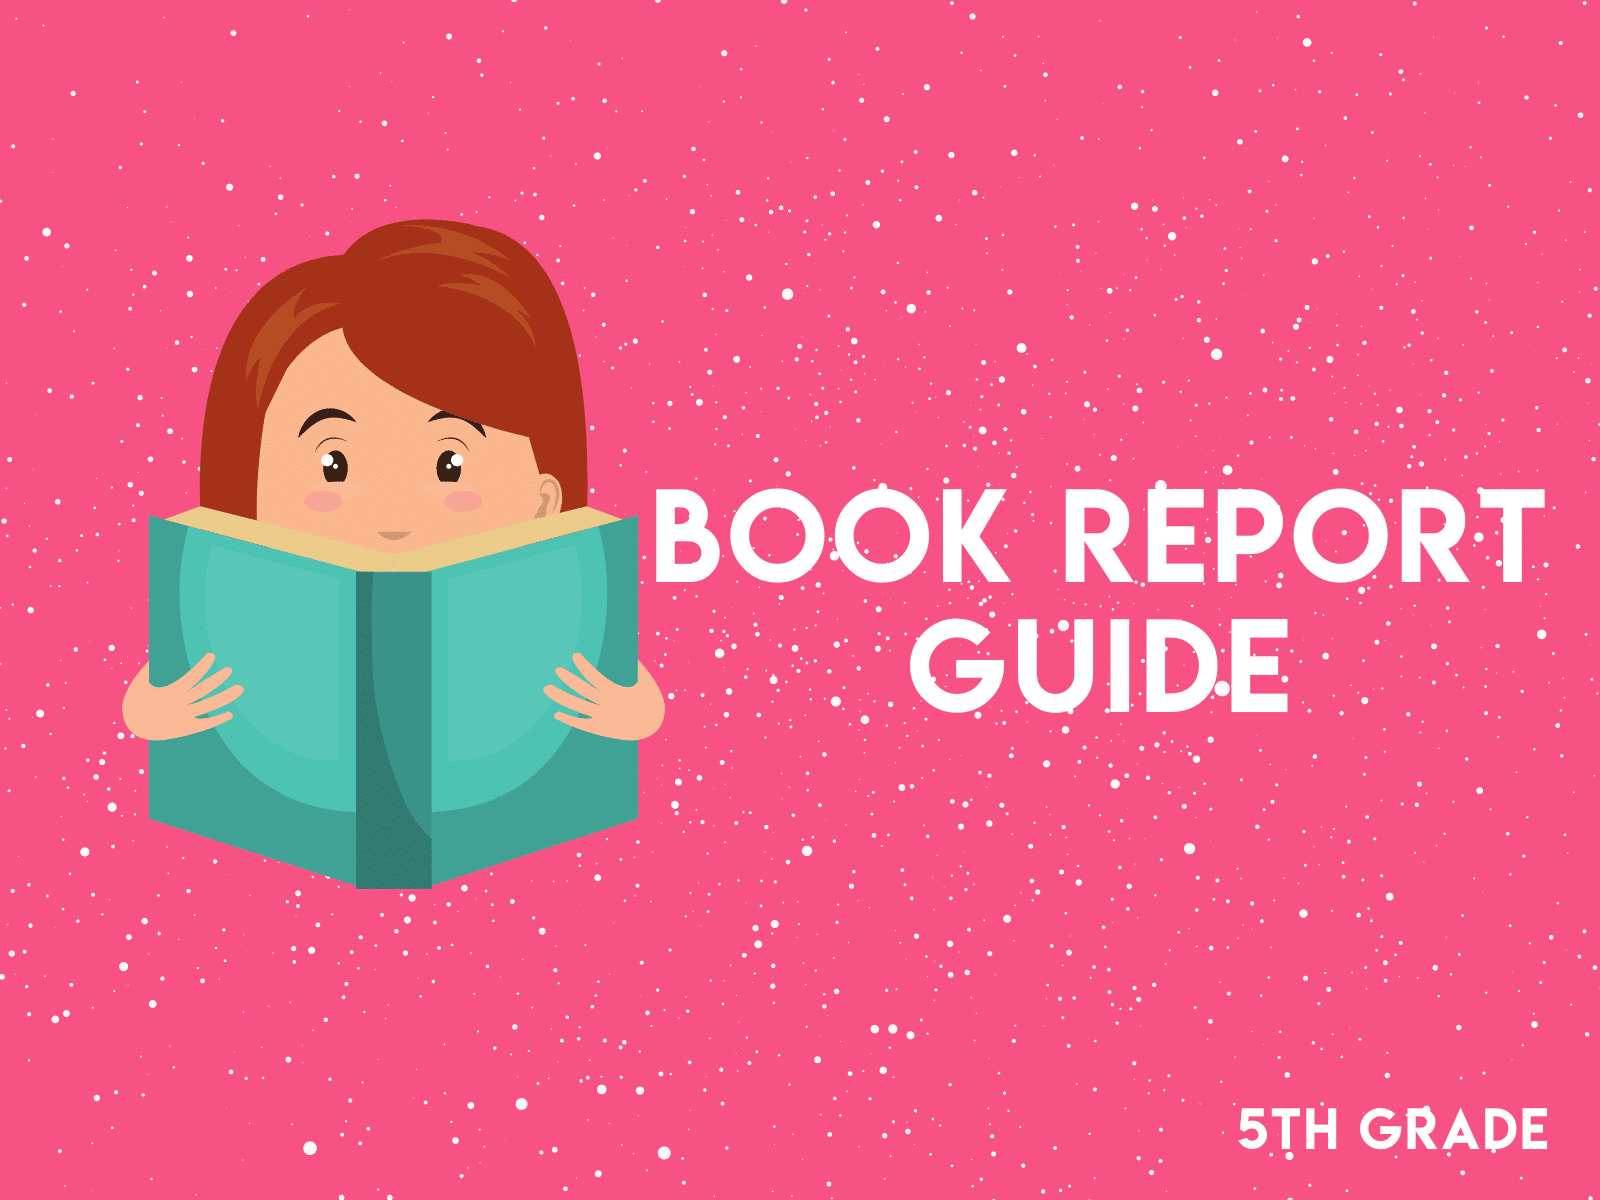 Utilize this free book report guide to help improve fifth grade reading skills.